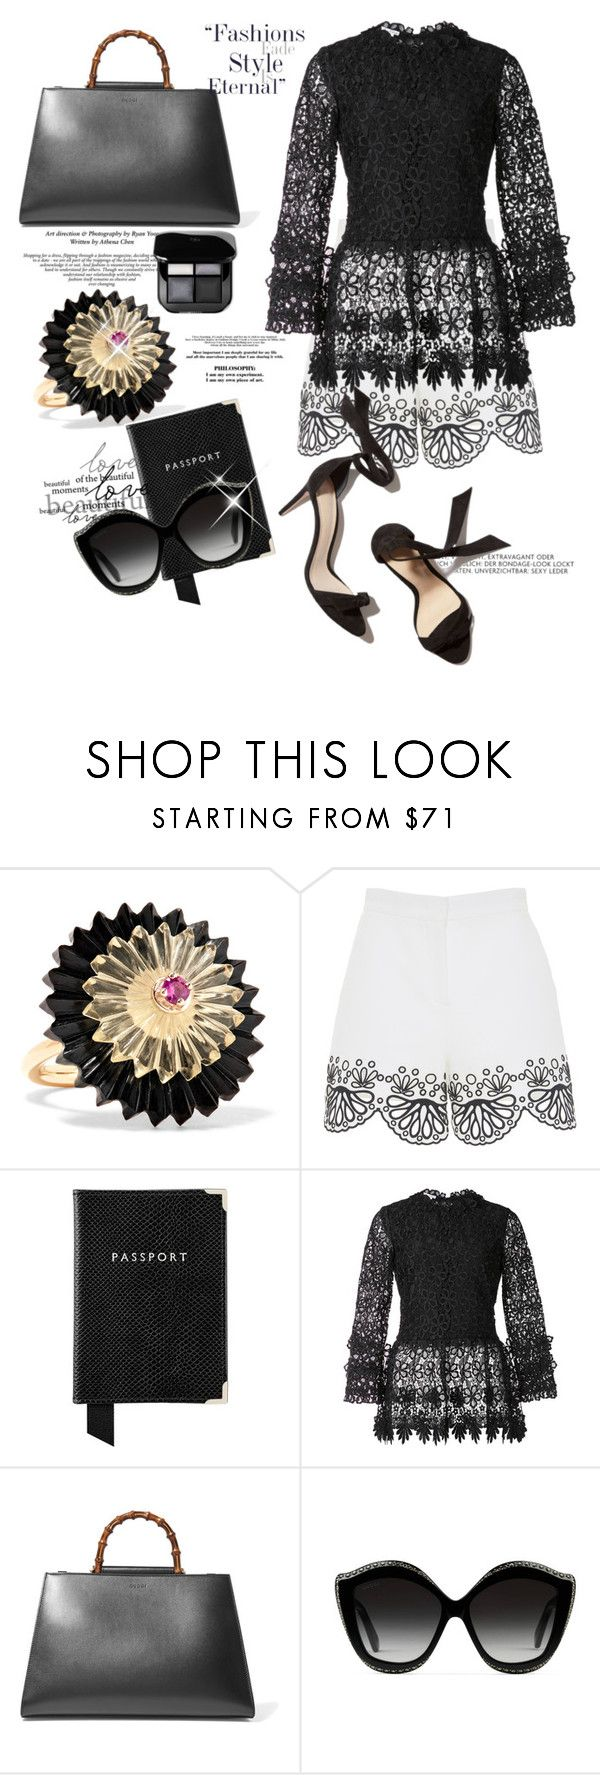 """""""EyeLet high waisted shorts..."""" by csfshawn on Polyvore featuring Alice Cicolini, Emilio Pucci, Aspinal of London, Oscar de la Renta and Gucci"""